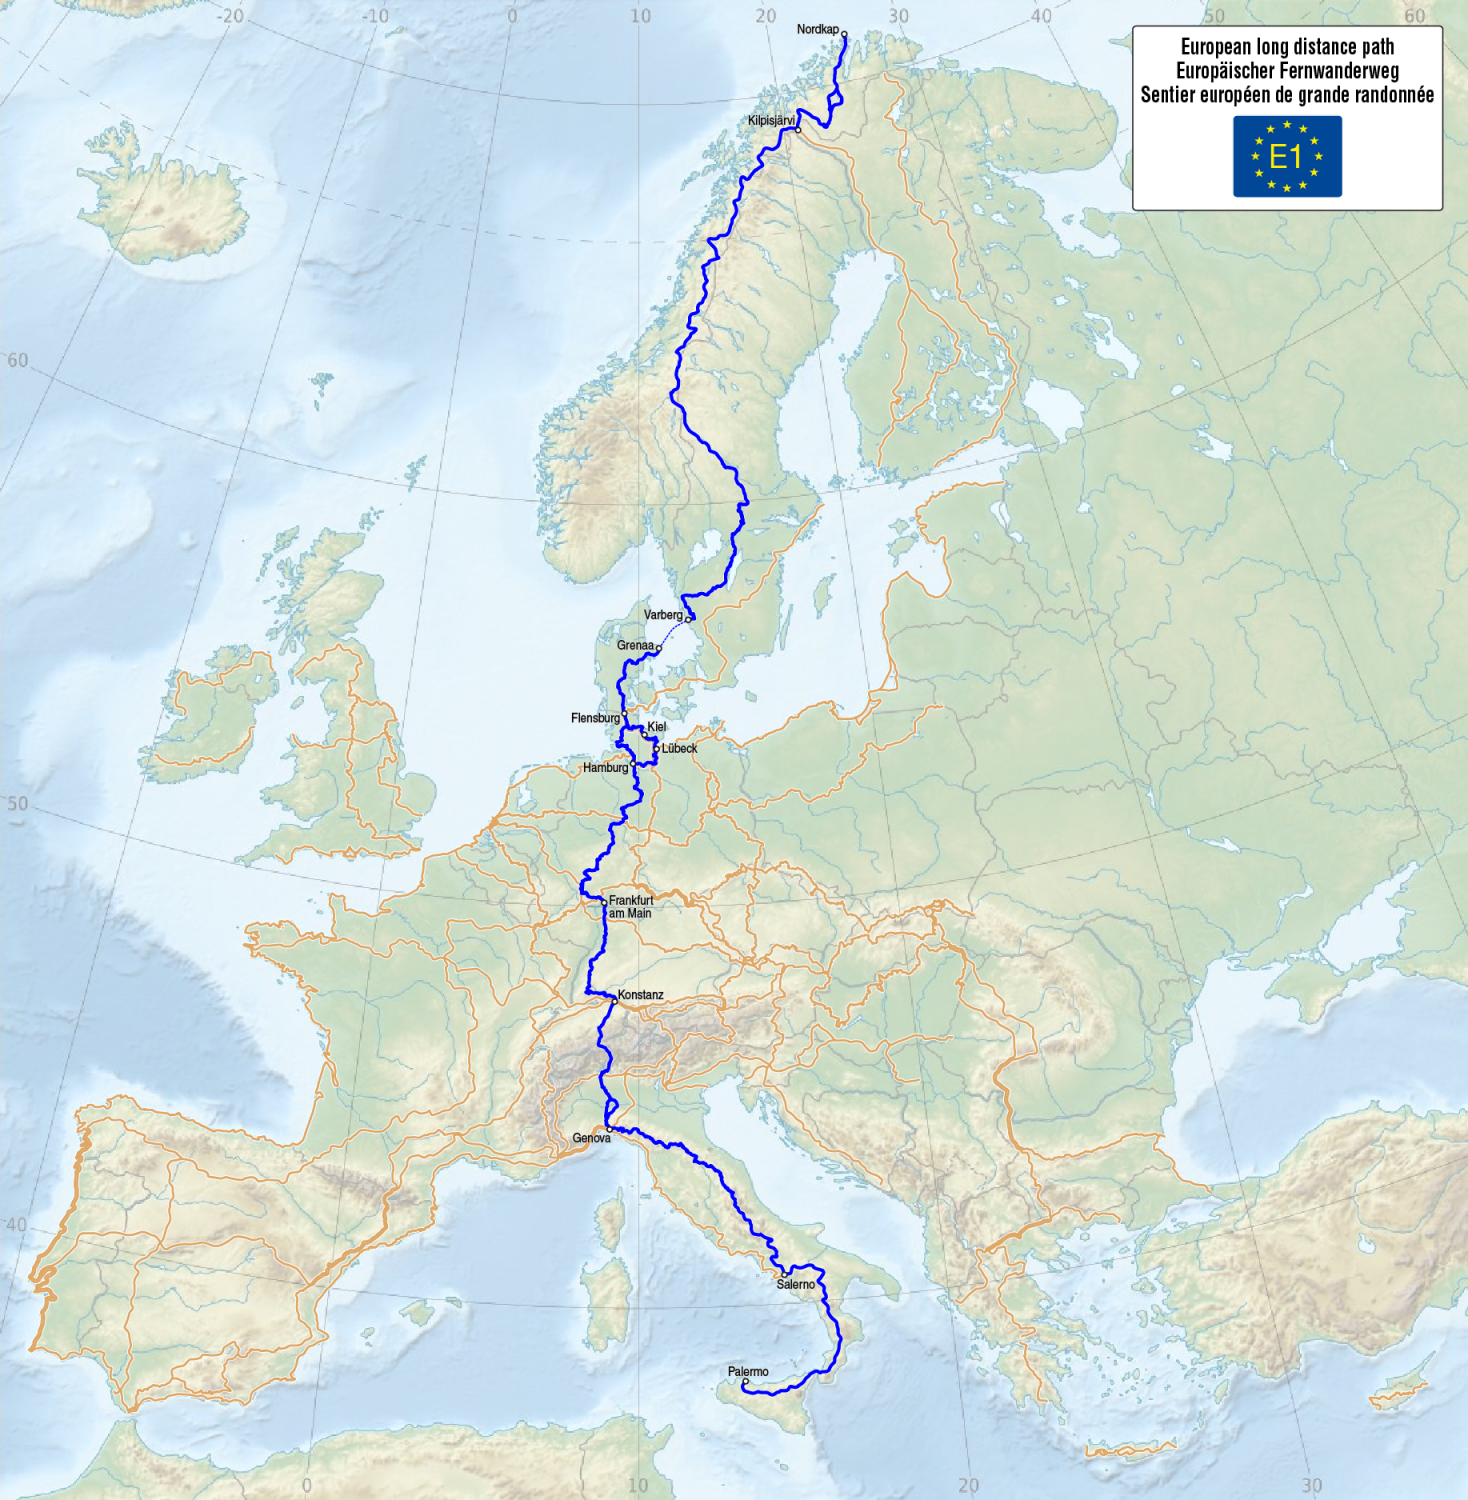 Map of the European long-distance trail E1